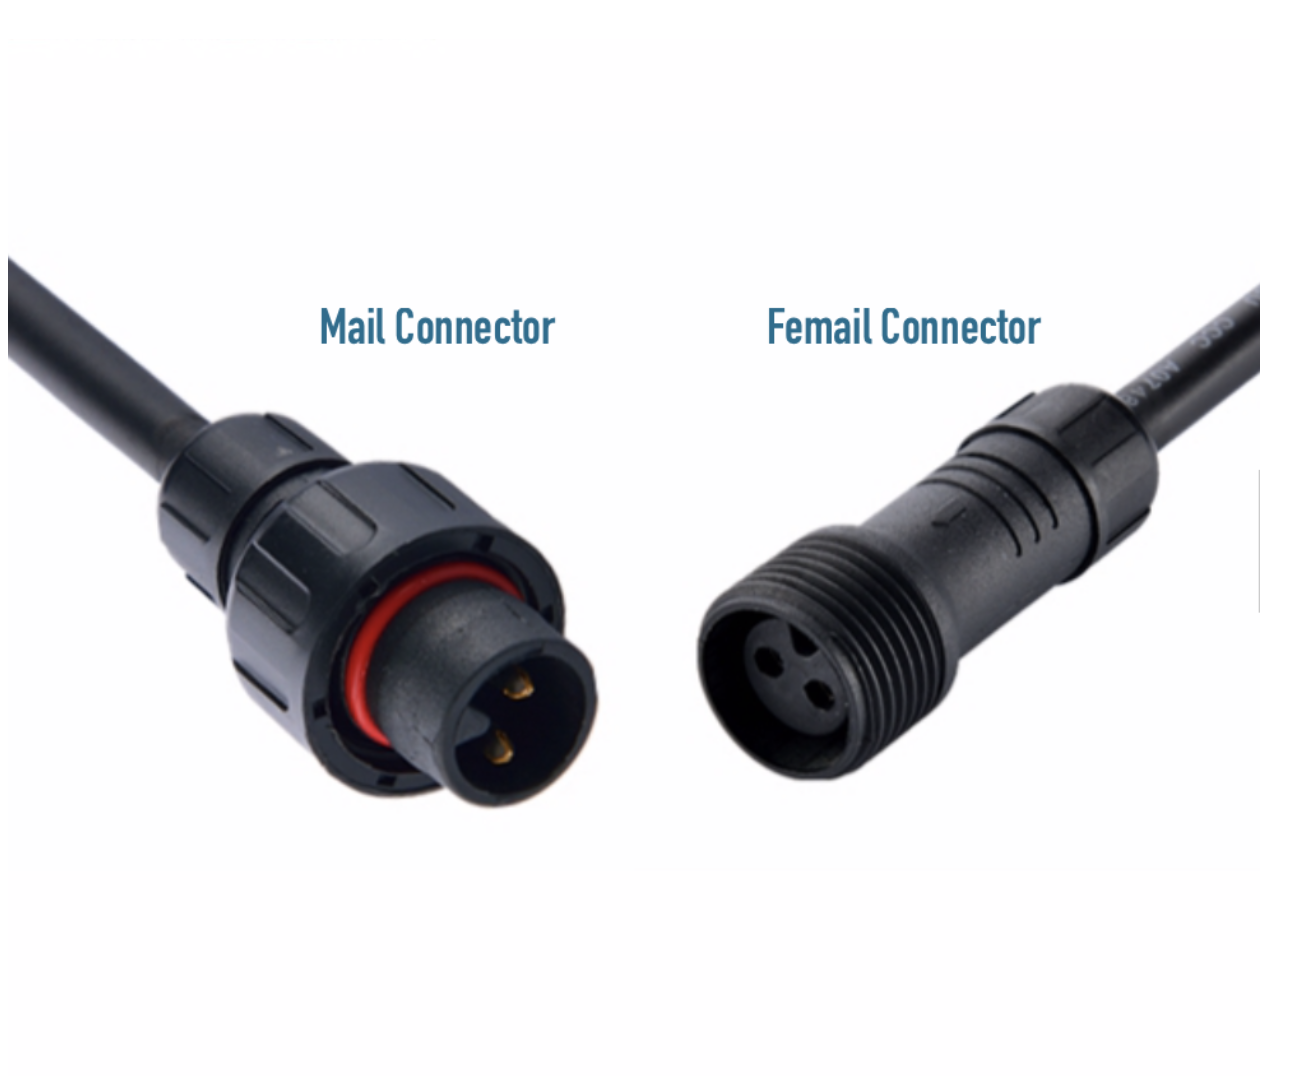 LED Outdoor Male connector kabel WW